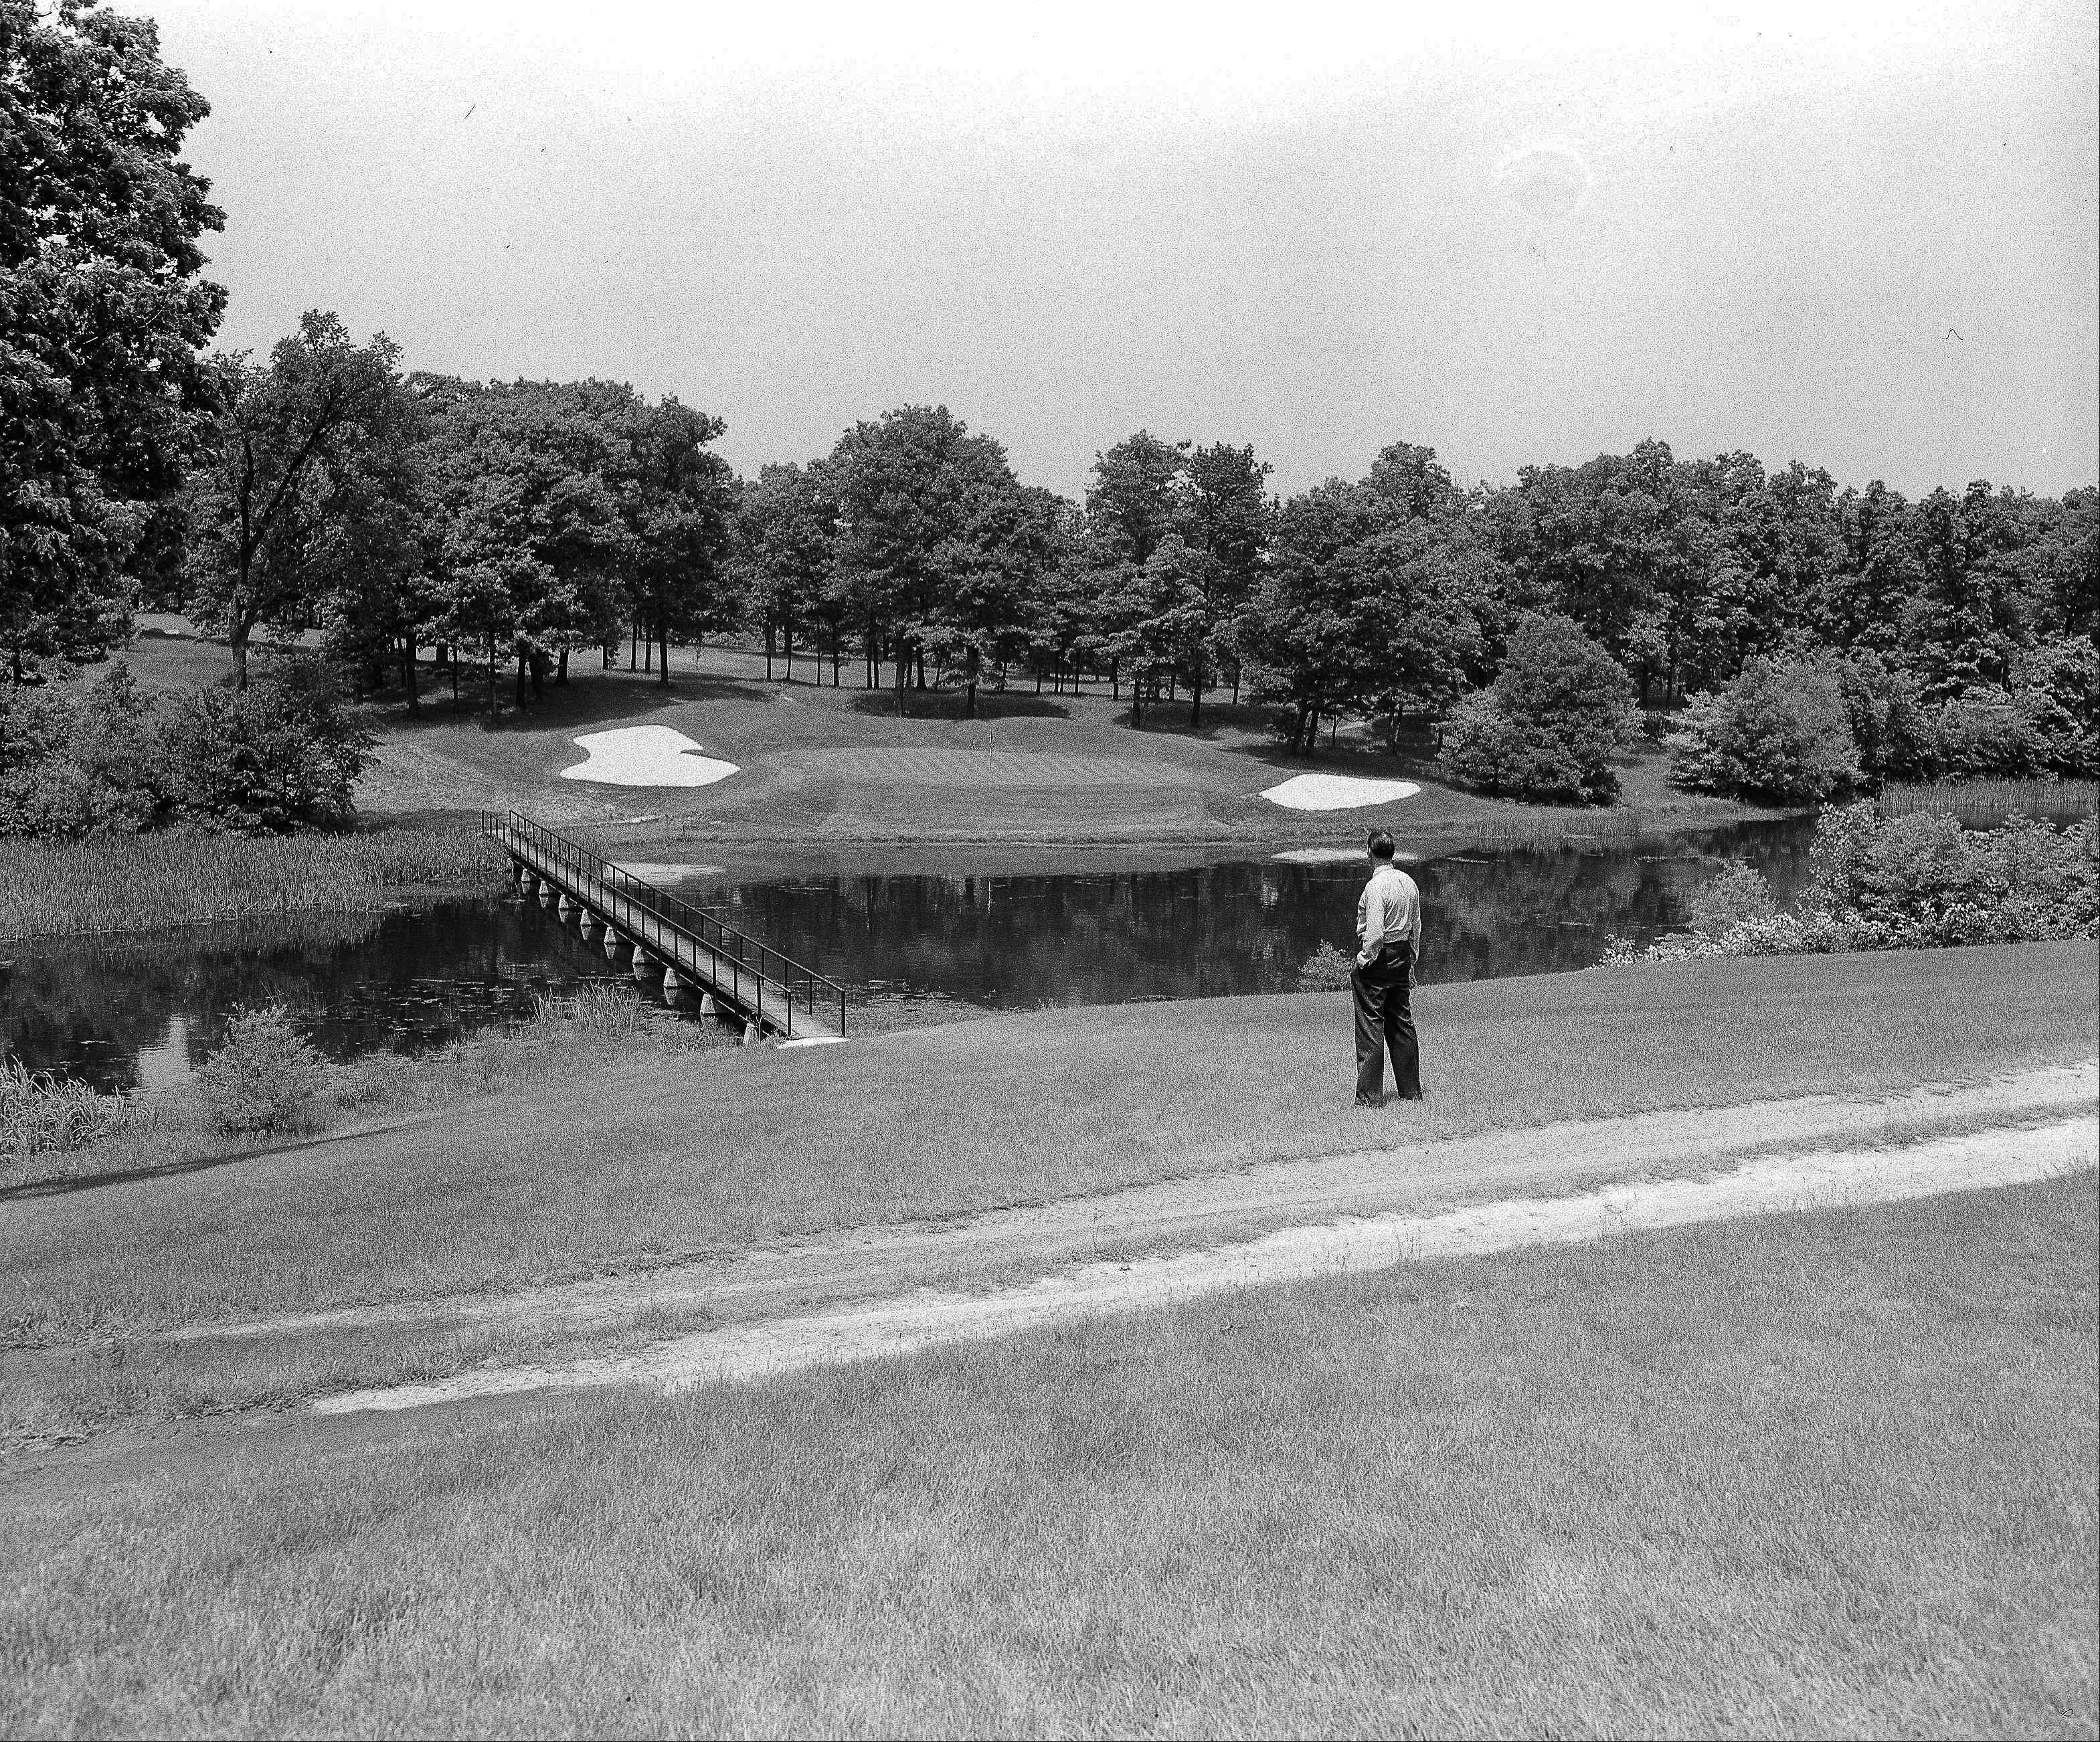 A spectator views the picturesque setting at the 17th hole of the No. 3 Championship Course at Medinah Country Club, Medinah, Illinois on May 31, 1949, where the U.S. Open Golf Tournament will be held June 9-11. Sand traps, a water hazard and an elevated green are among the obstacles golfers will have to contend with on the 193-yard, par 3 hole.